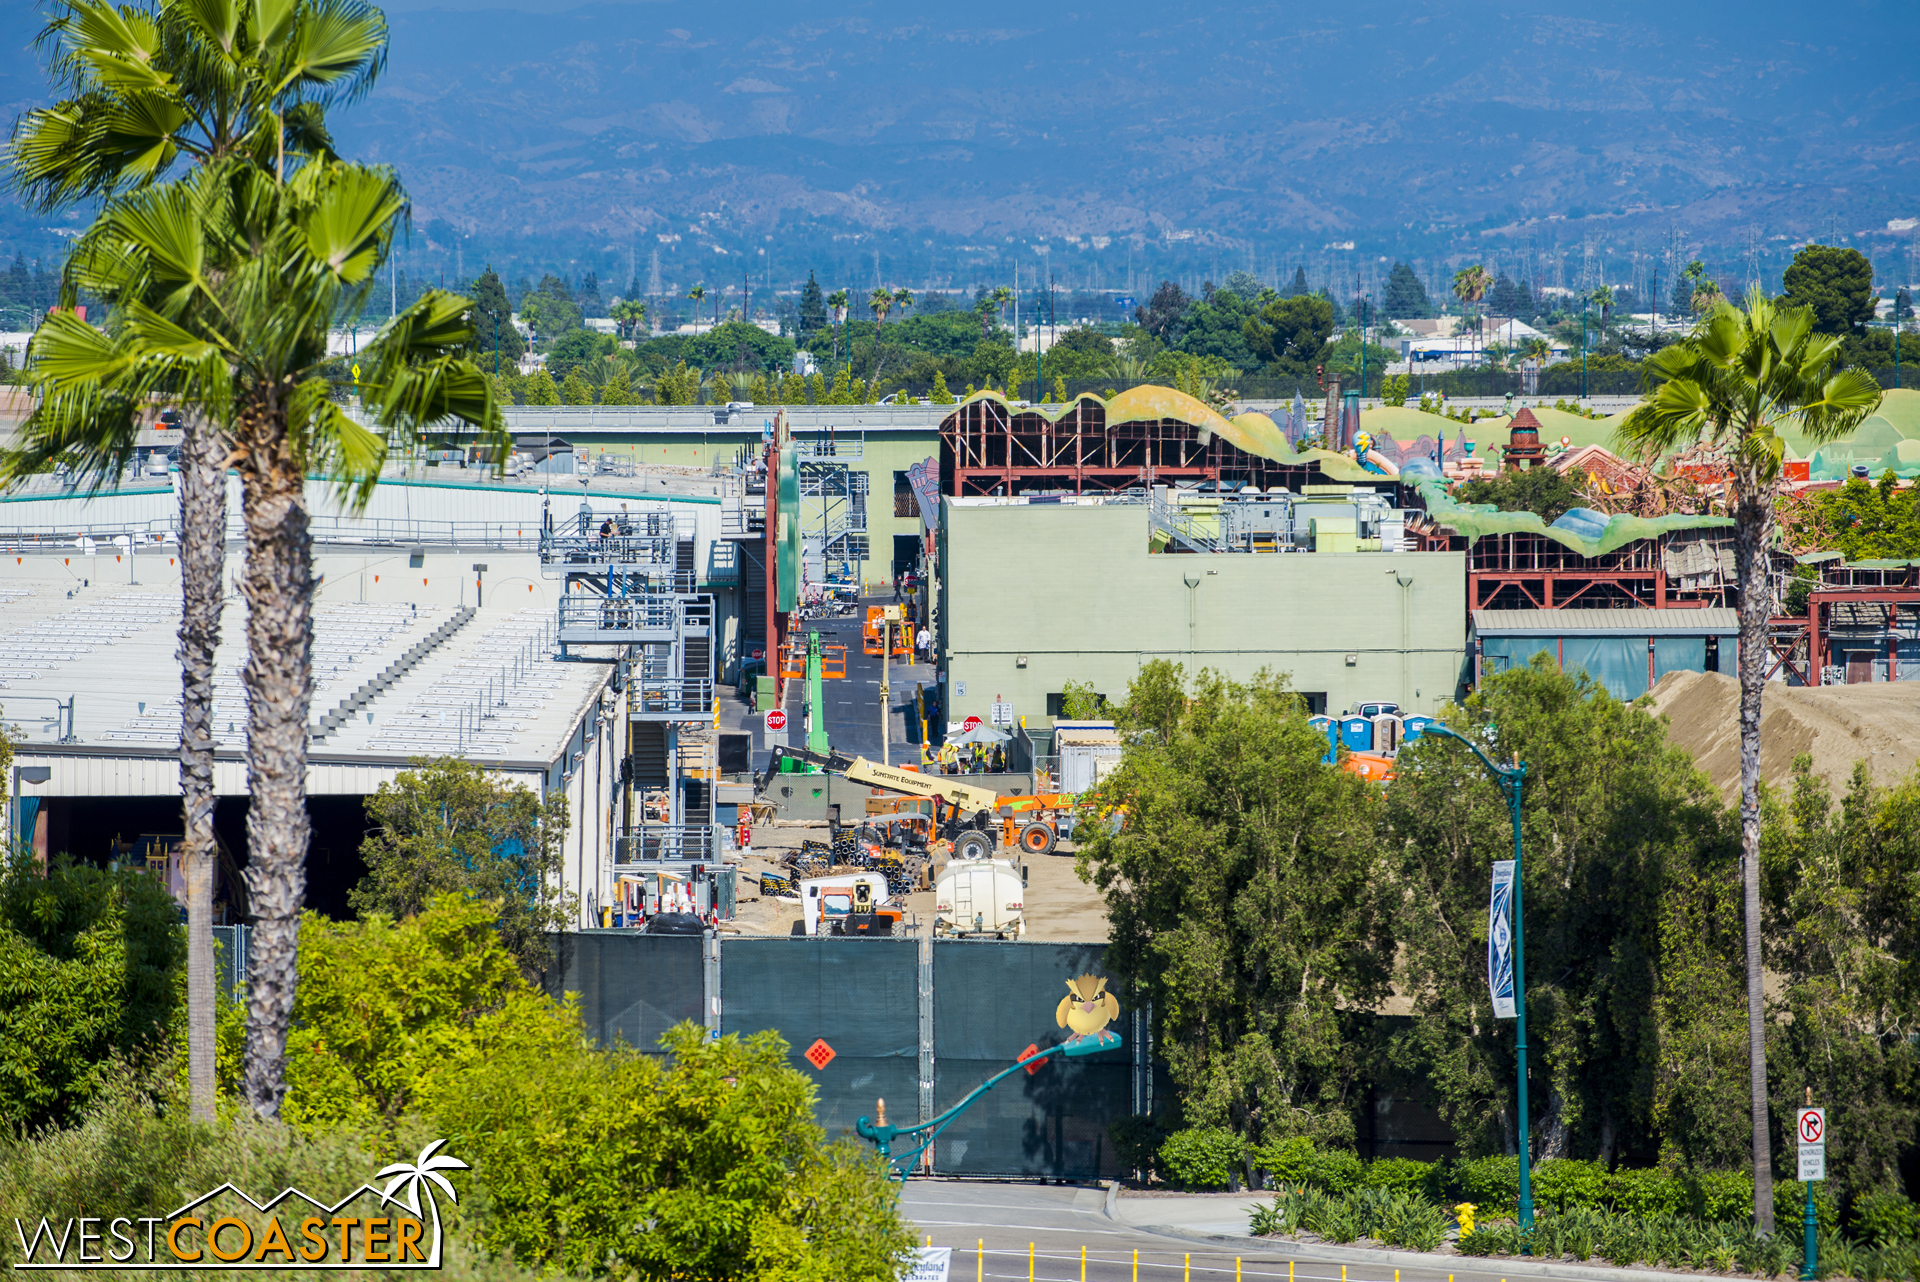 More equipment continues to show up. Here's and angle closer to Mickey's Toontown backstage that I haven't shot before.